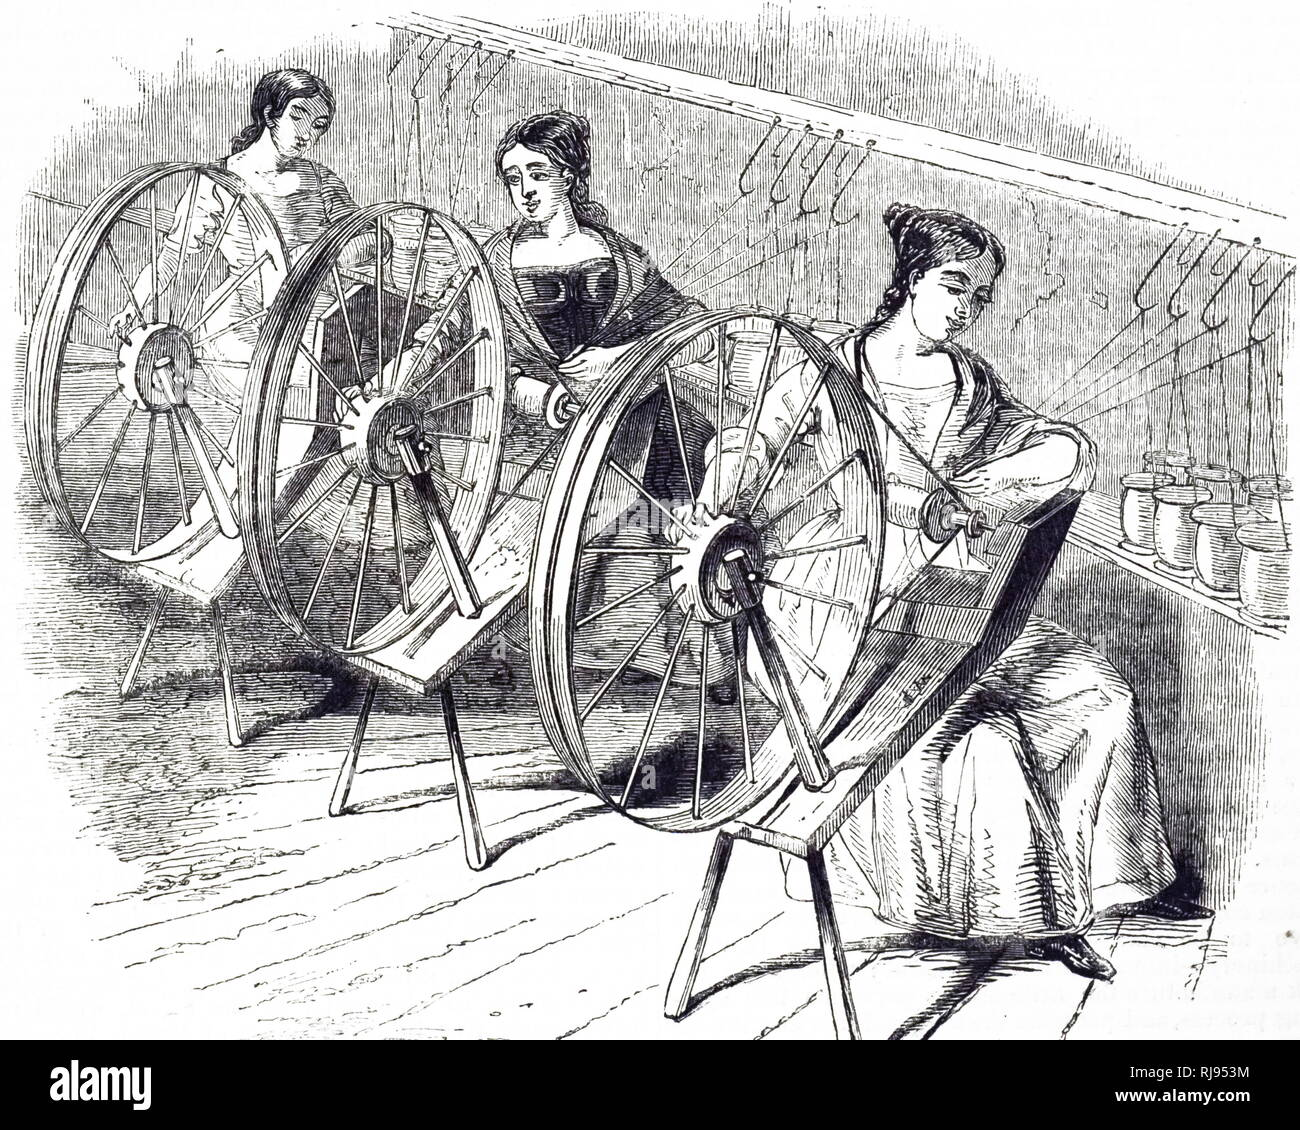 An engraving depicting the method of doubling silk in Lombe's Silk Mill, Derby. In this process, two or more of the spun threads laid parallel on a bobbin ready to be twisted on the throwing machine. Dated 19th century - Stock Image